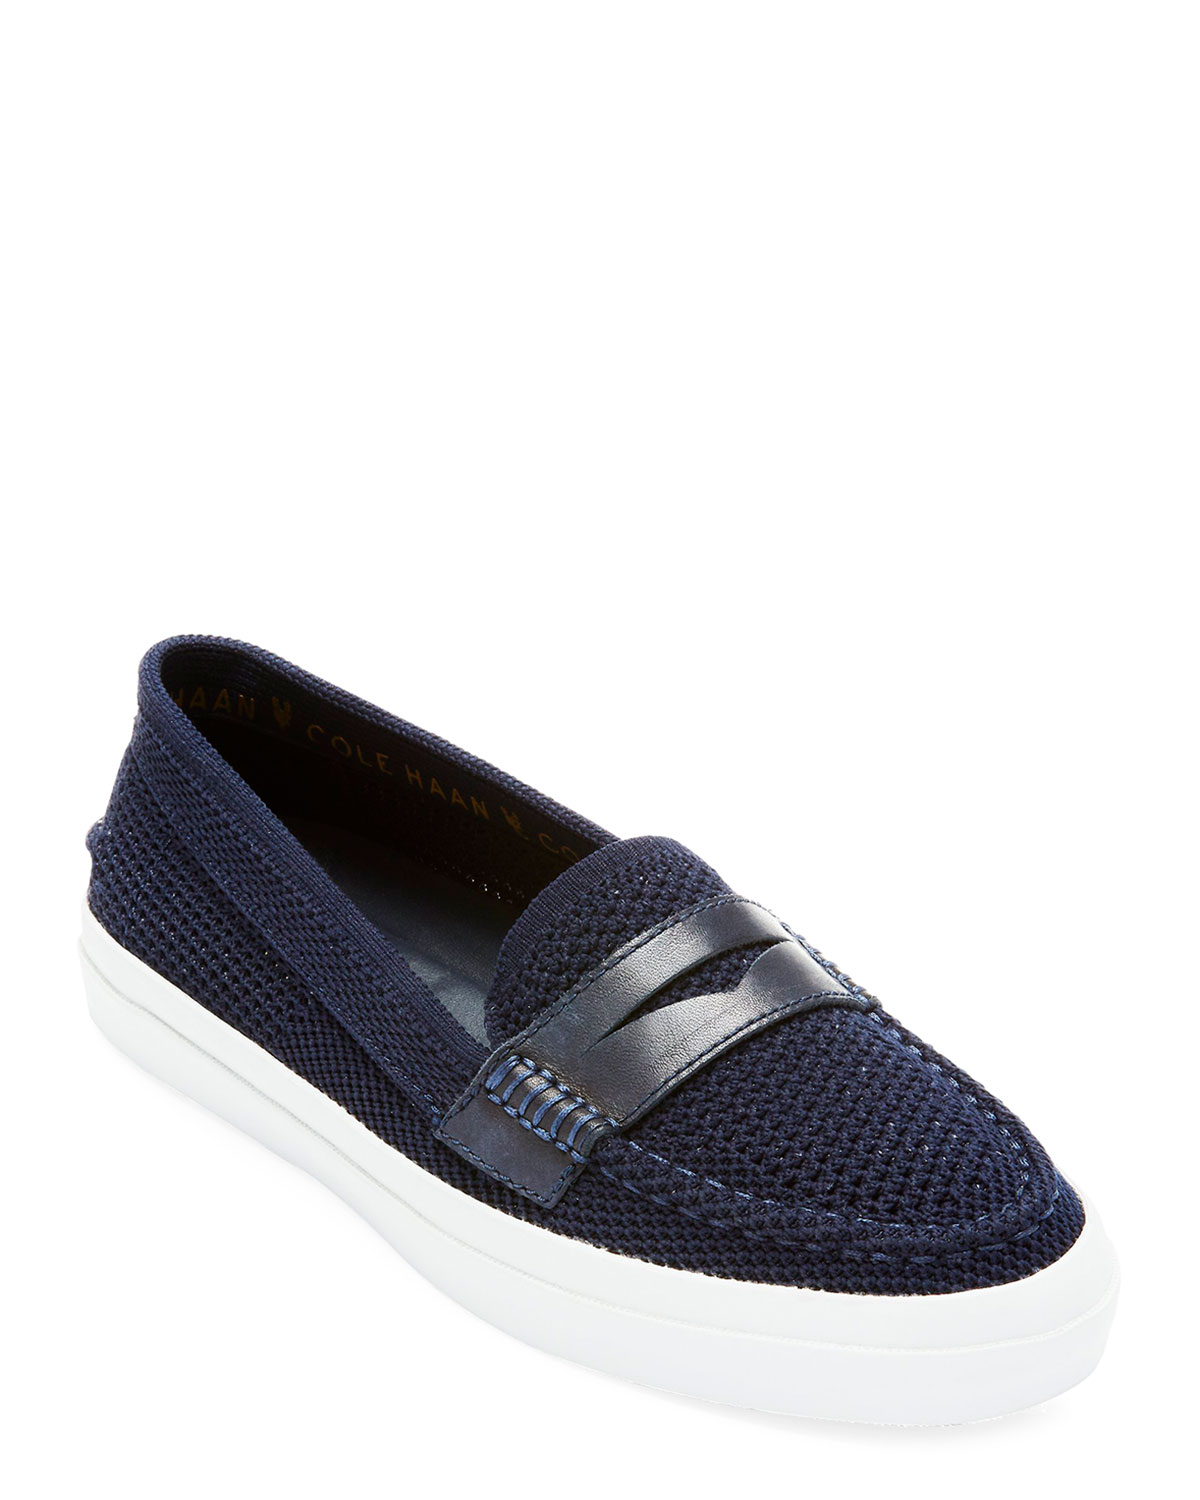 4e8d8bb3f8b A leather penny strap references a classic look on a contemporary loafer  fashioned from stretch-knit fabric to keep you feeling cool and breezy.